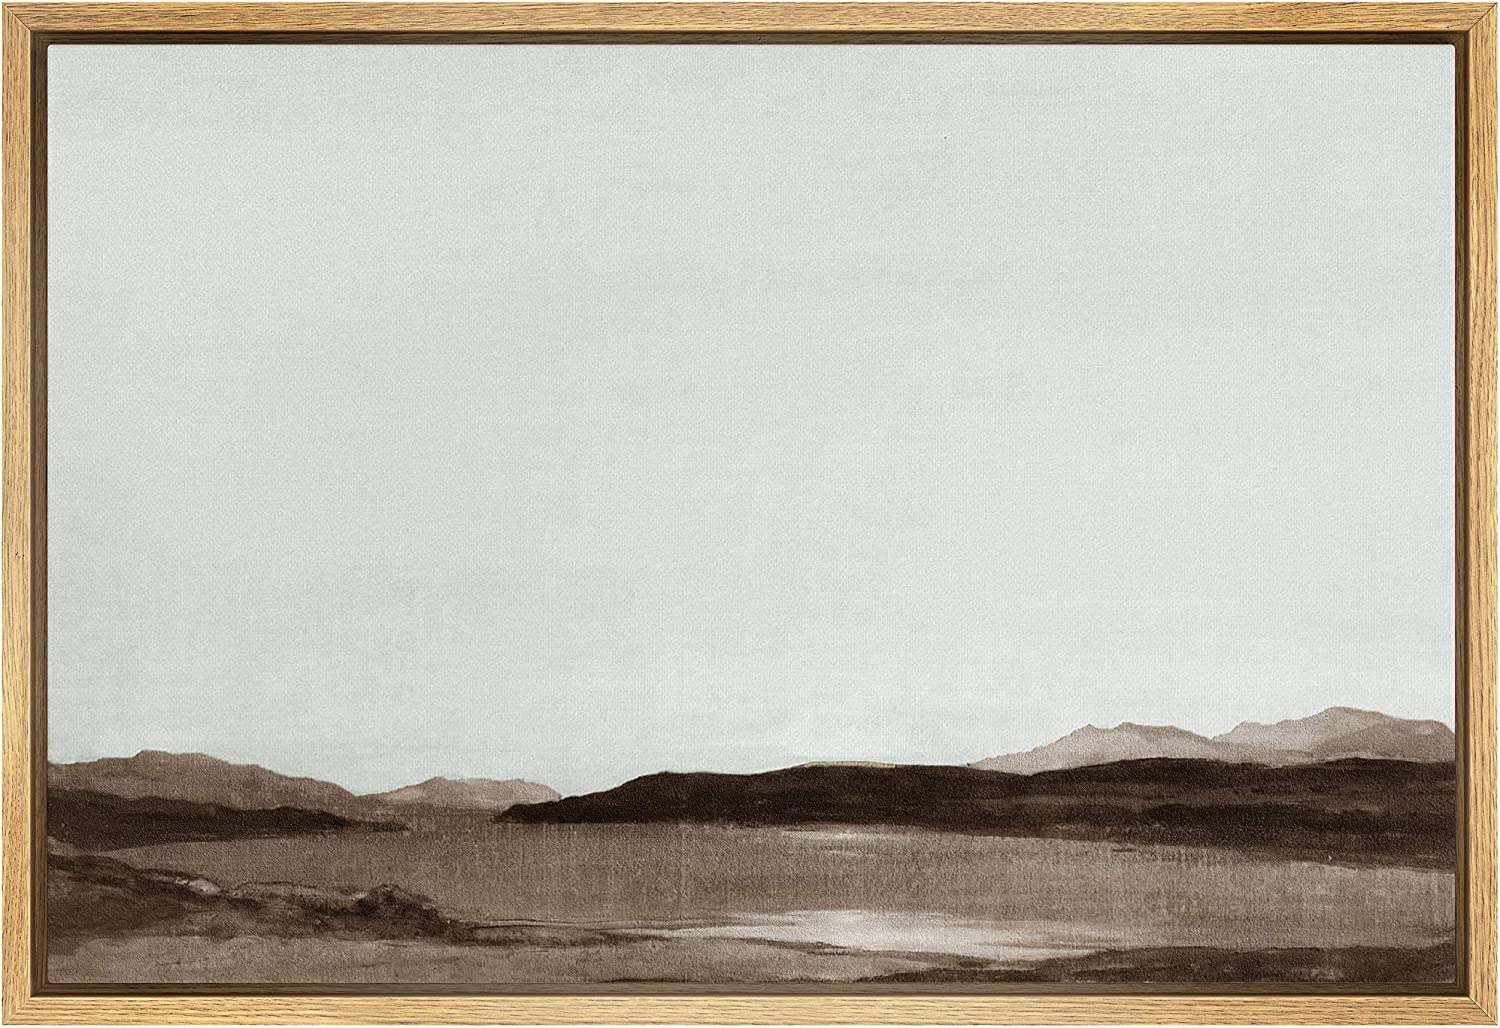 SIGNFORD Framed Canvas In a popularity Max 68% OFF Wall Art an Monochromatic Mountains Brown